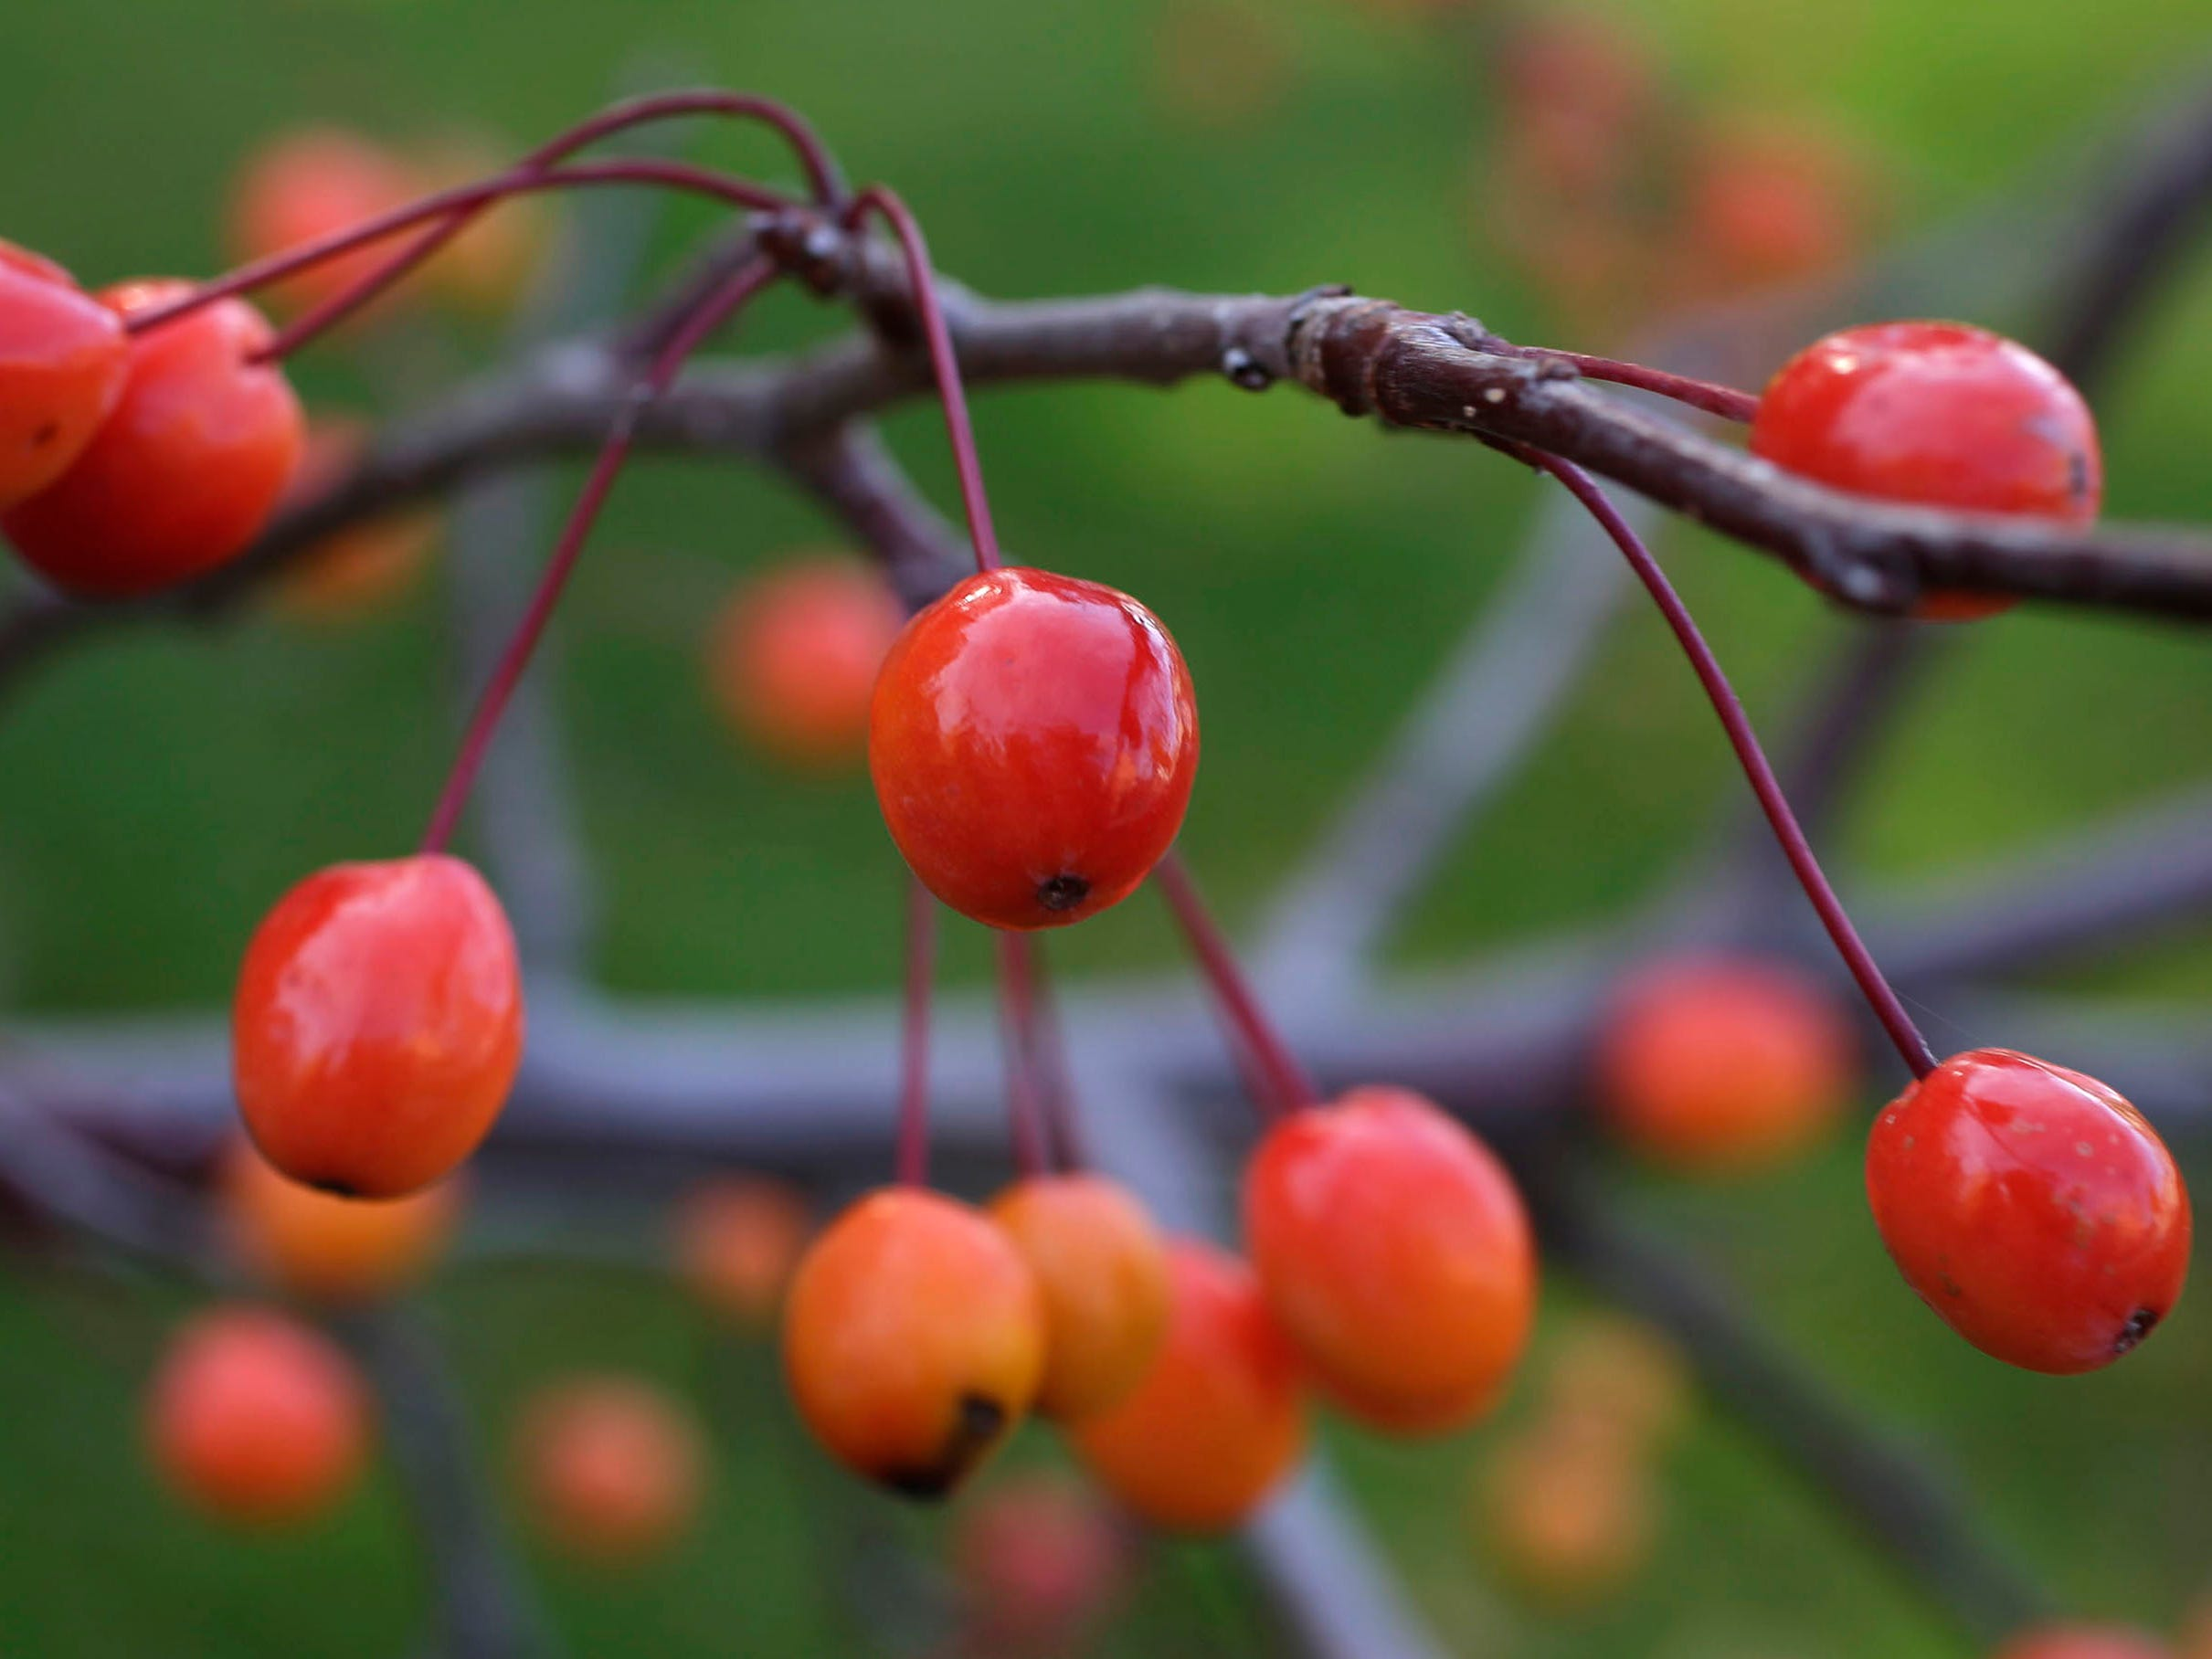 Tiny crab apples are the only items left on branches of a flowering crab tree, Wednesday, October 31, 2018, in Sheboygan, Wis.